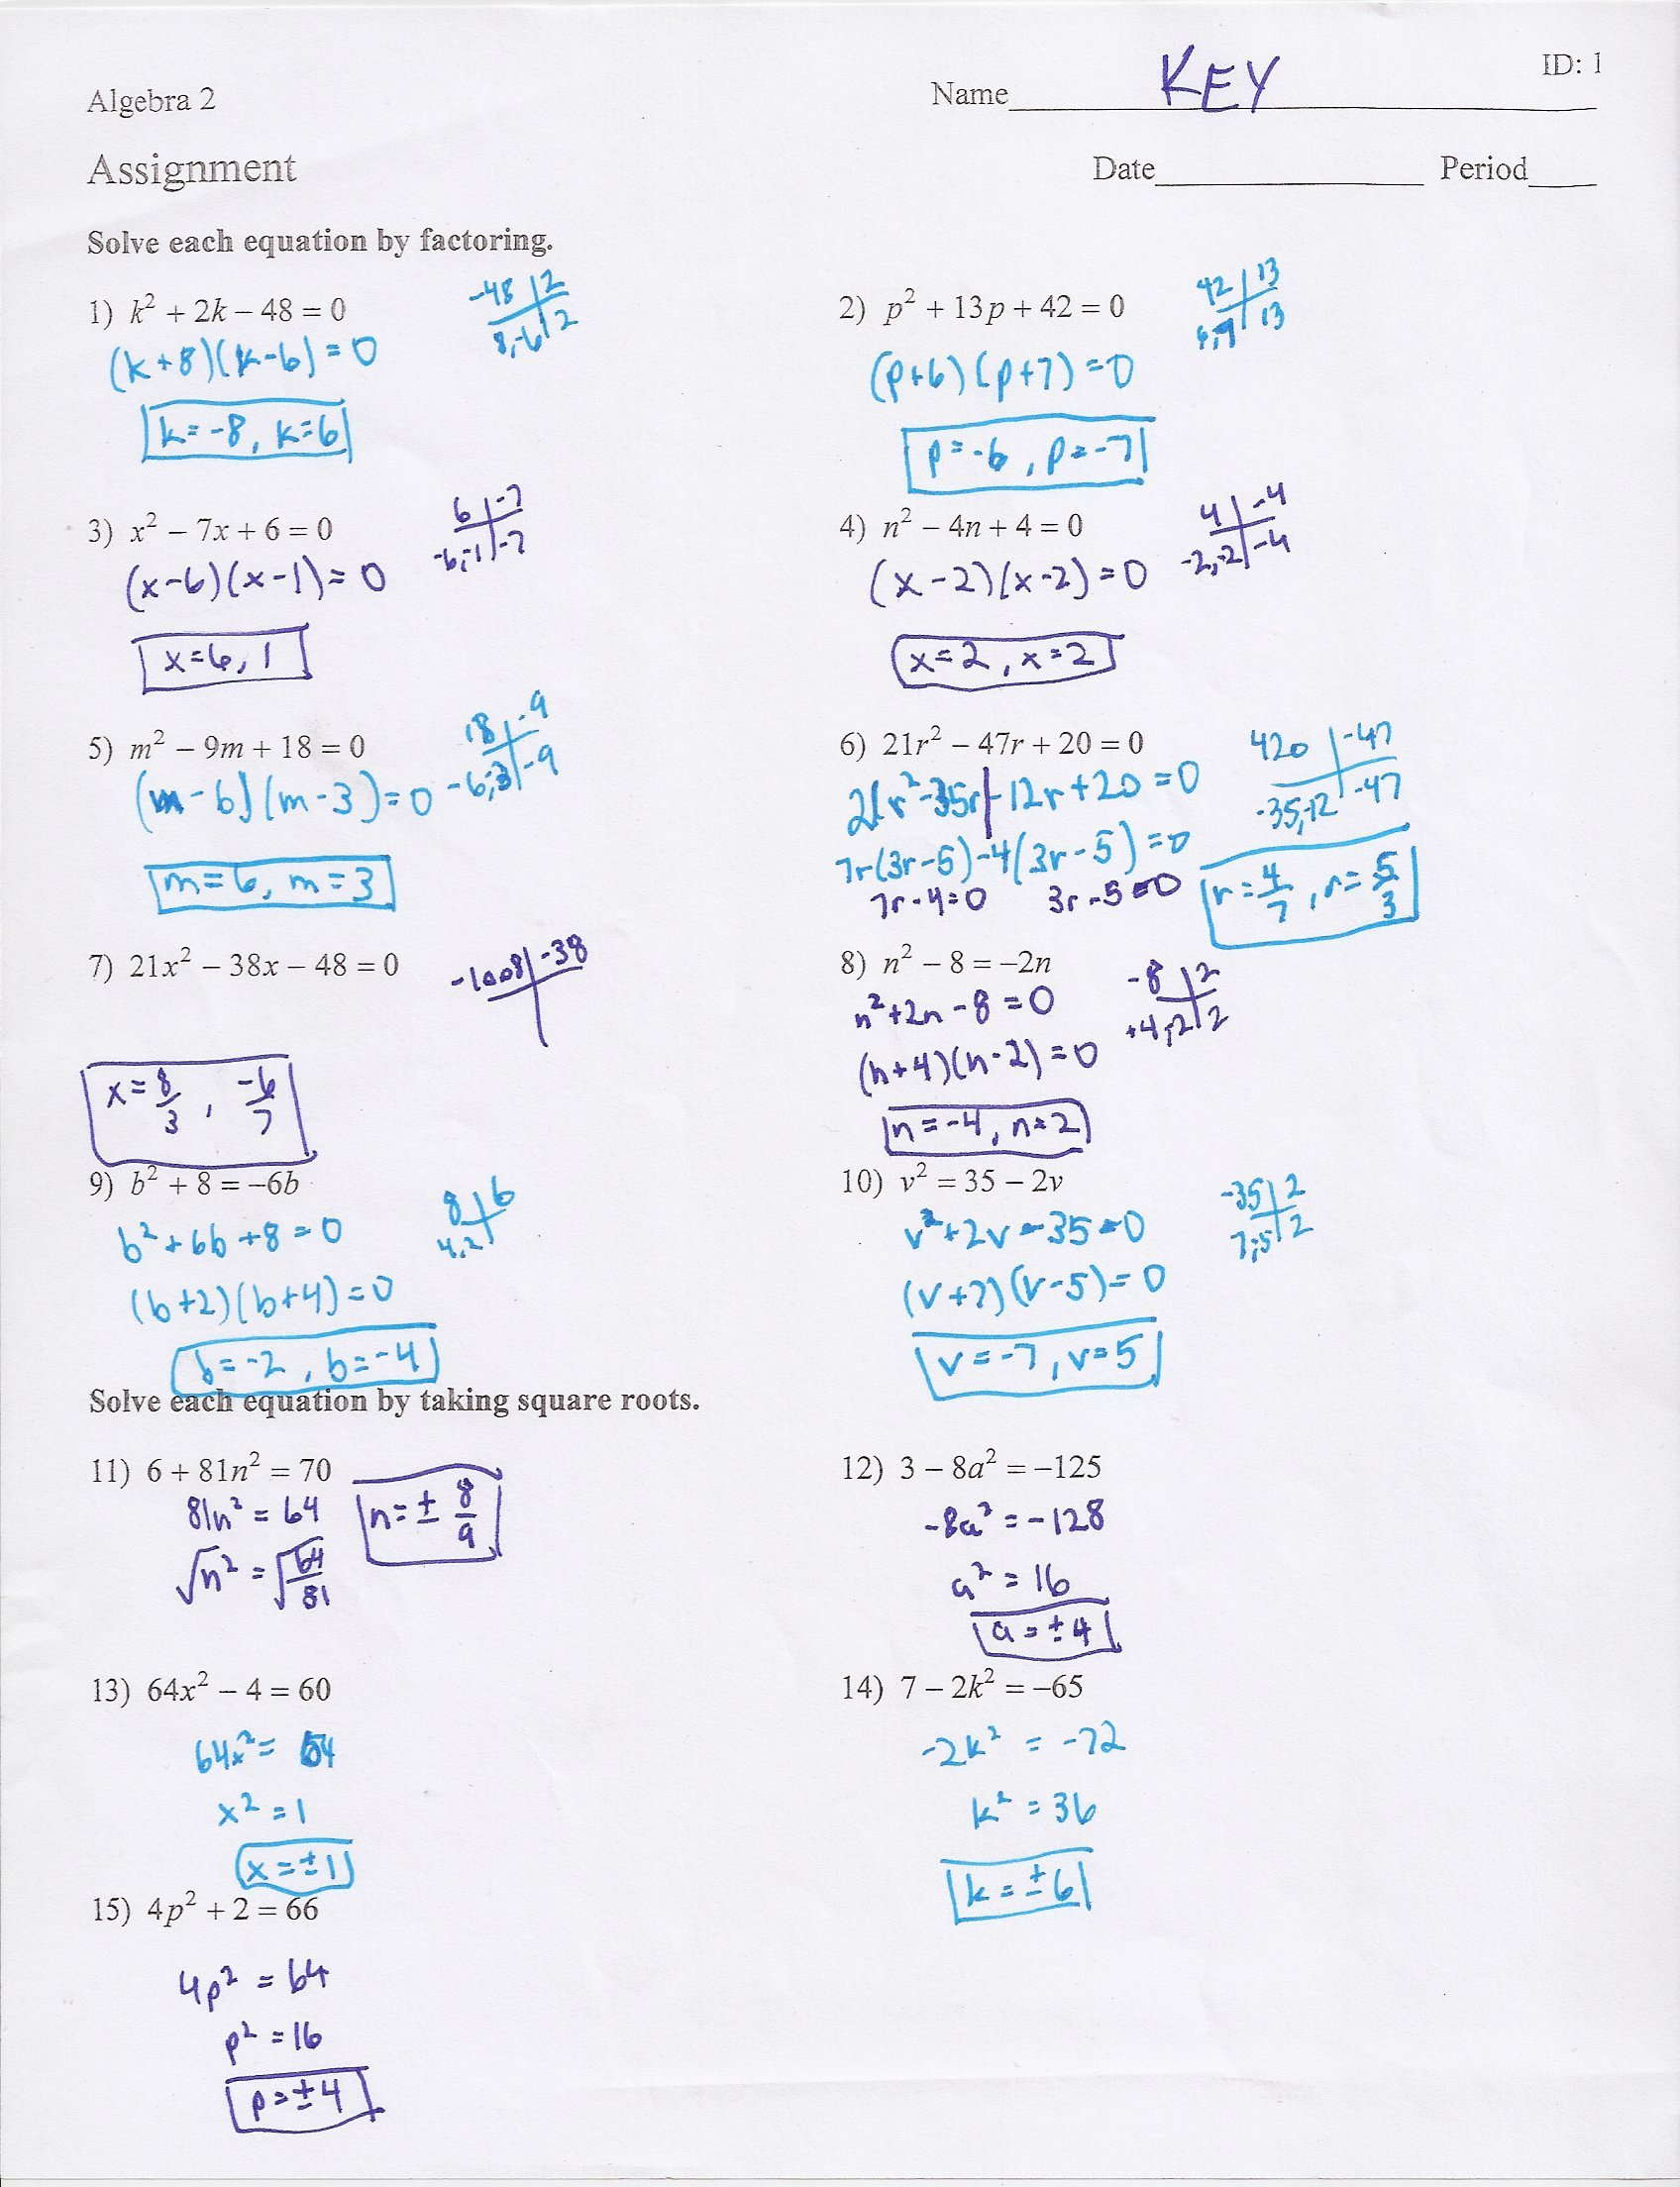 Solving Equations Review Worksheet Fresh solving Quadratic Equations with Square Roots Worksheet